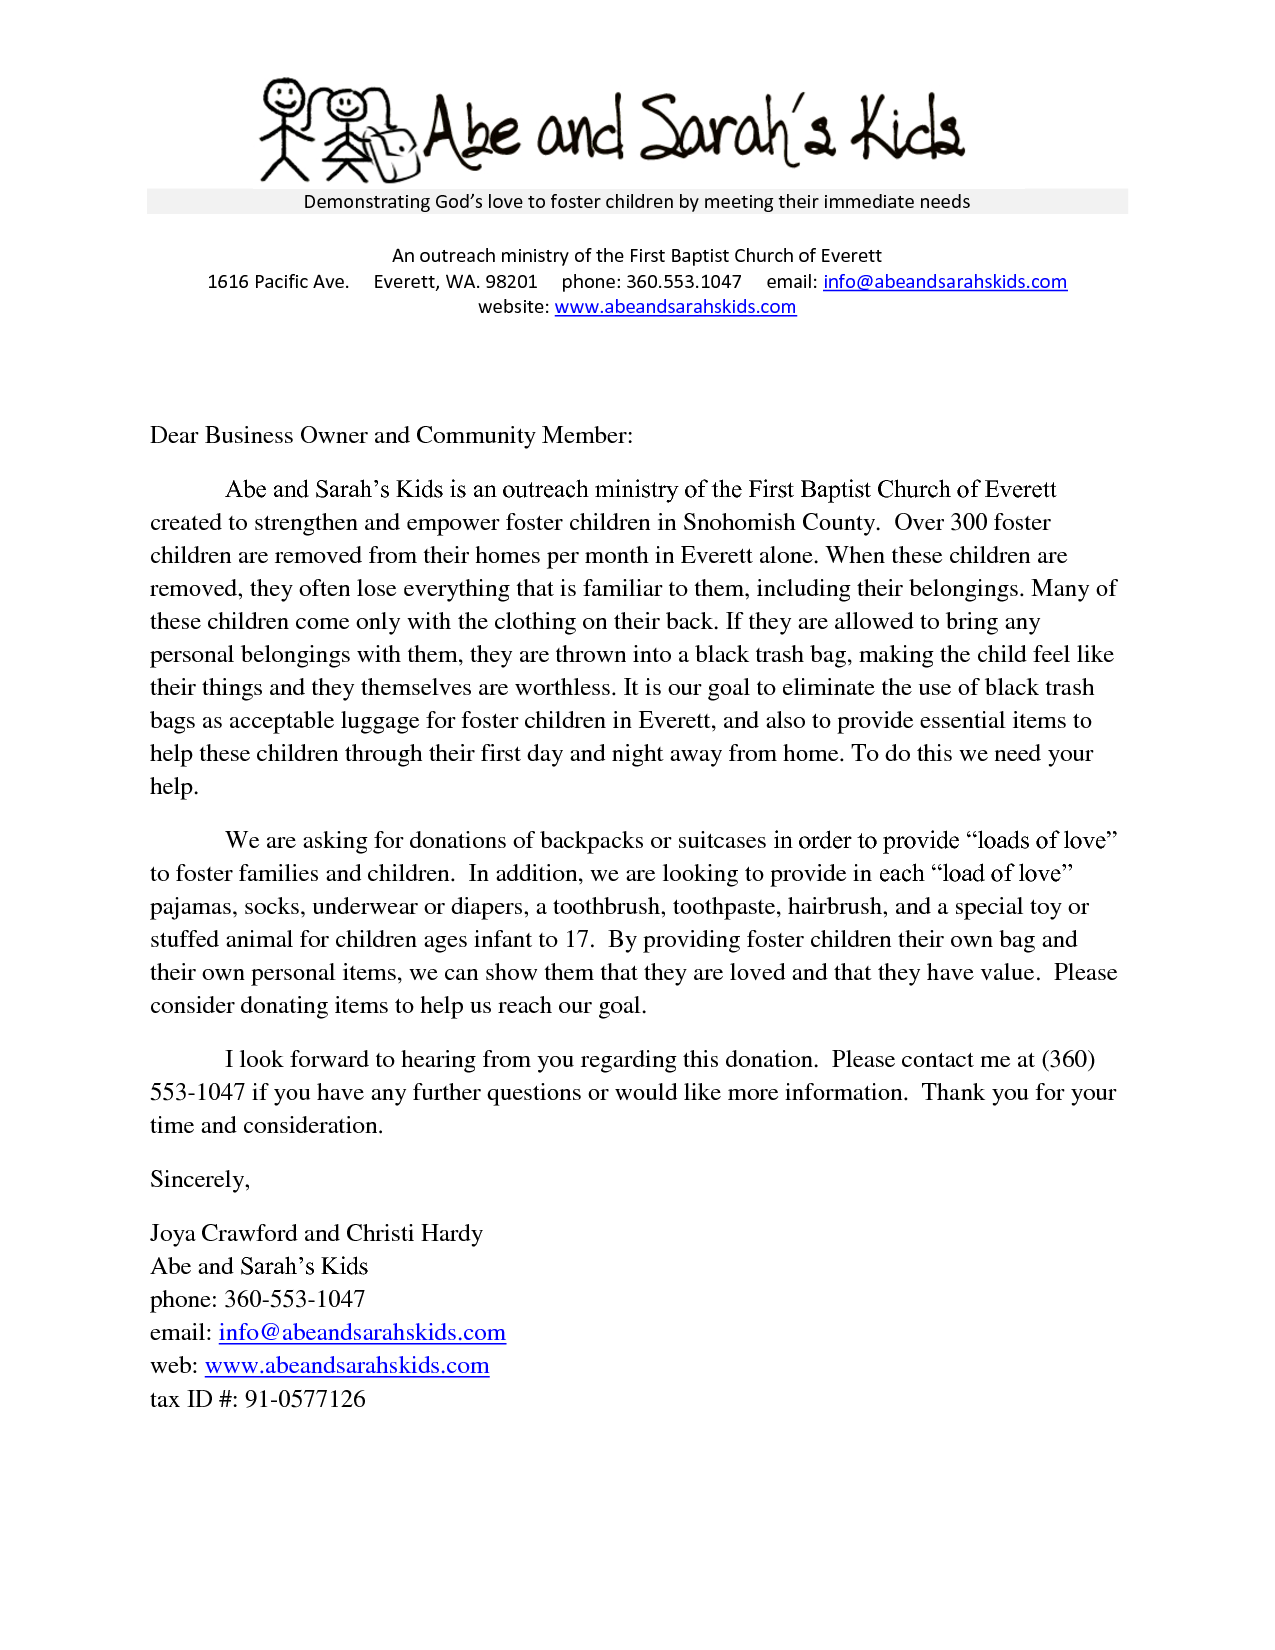 Ergonomic Chair Request Letter Ultimate Fishing Sample Church Donation